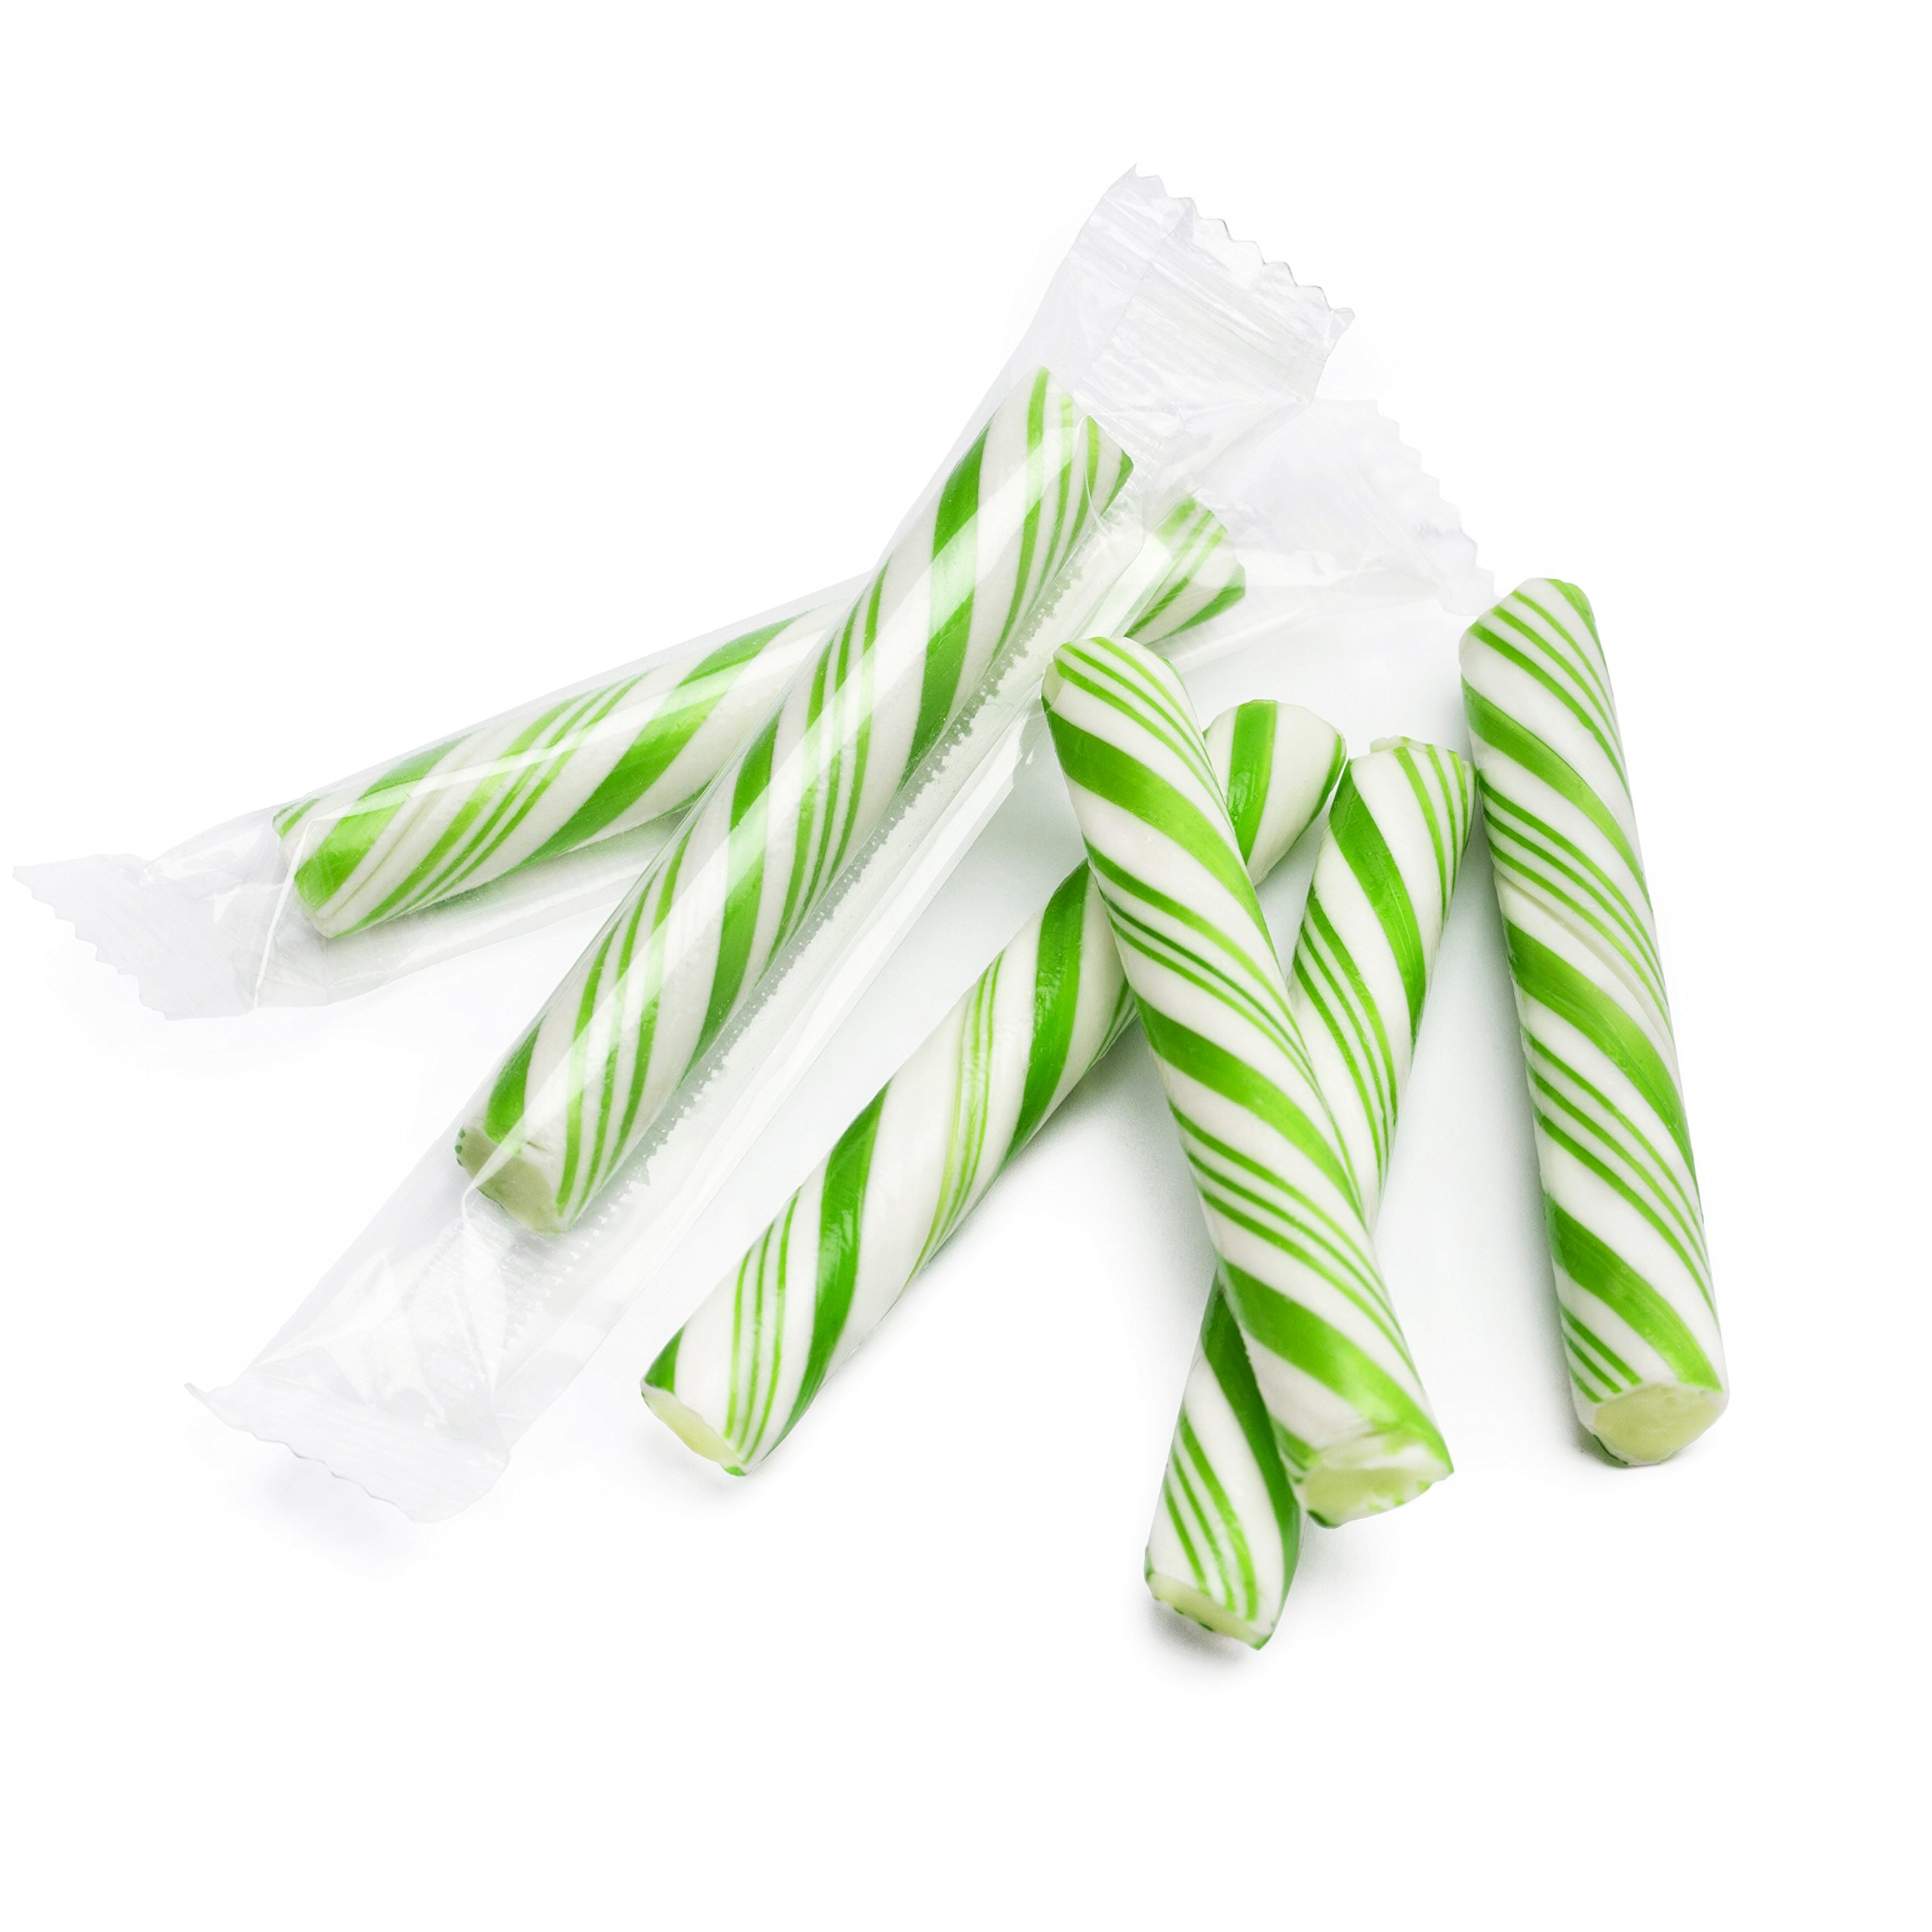 Sticklettes Petite Candy Sticks - 150 Piece Tub (Green) by YumJunkie